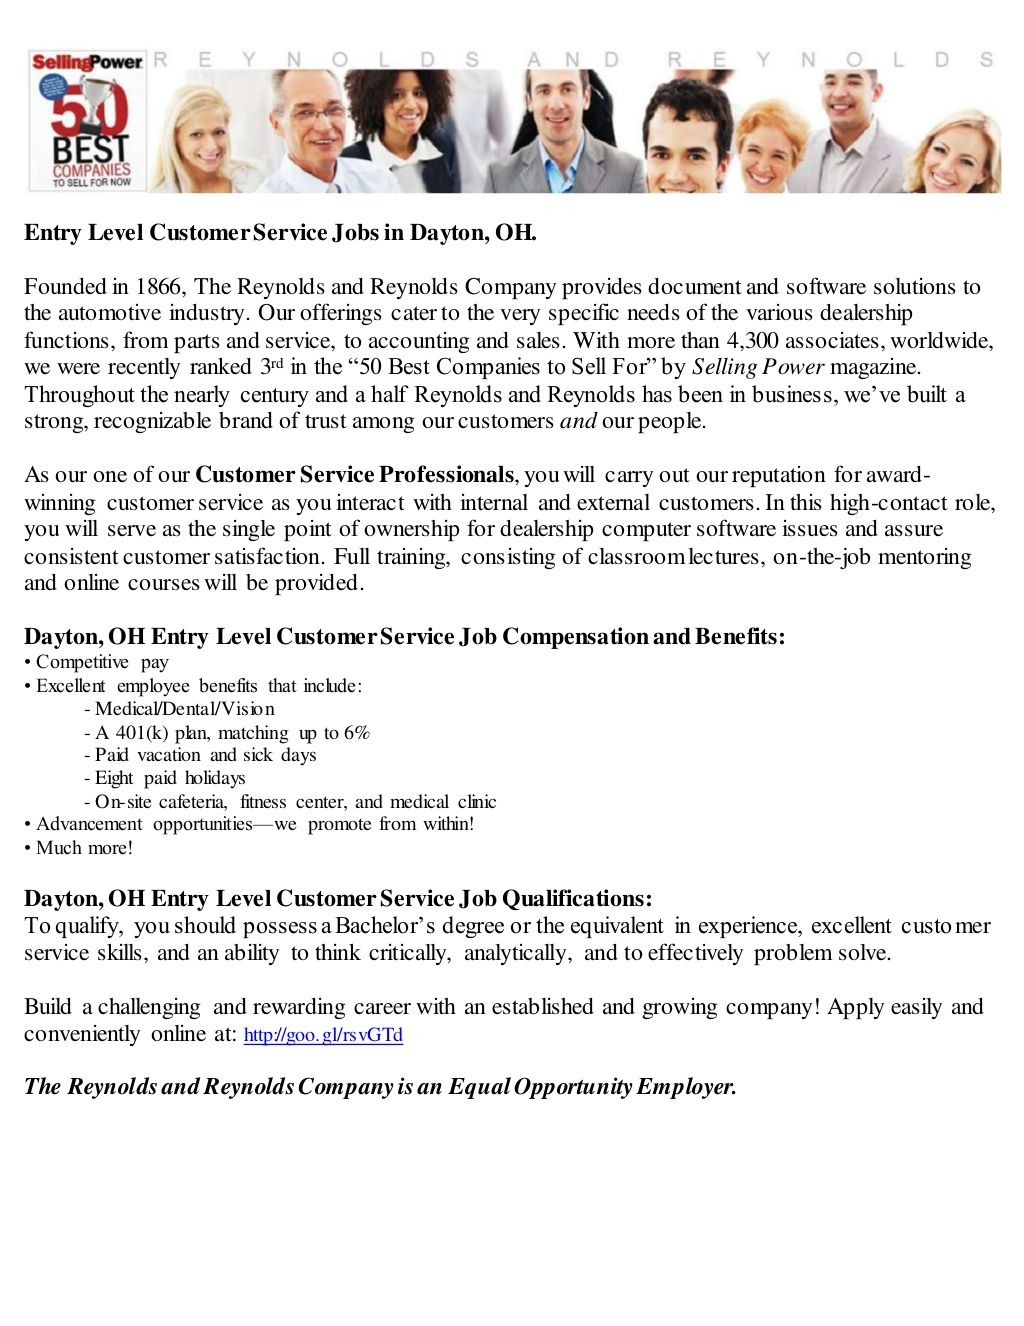 Entry Level Customer Service Jobs in Dayton, OH by